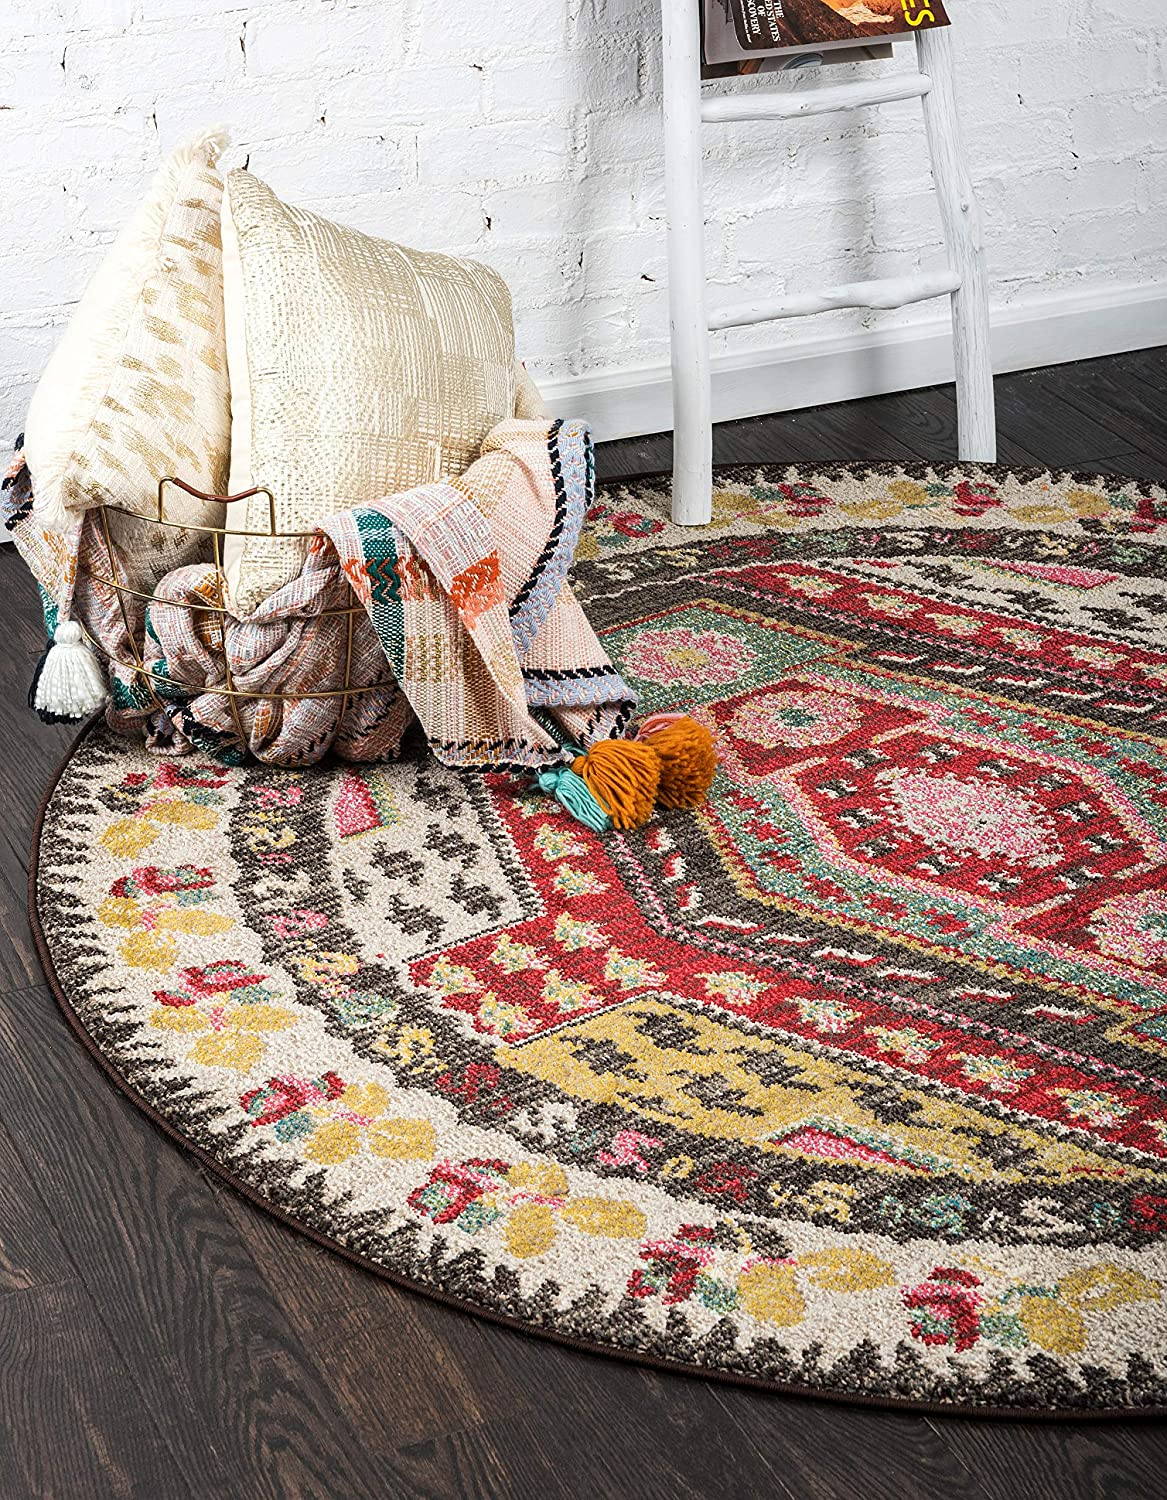 Unique Loom Sedona Collection Over-Dyed Tribal Geometric Multi Round Rug (6' 0 x 6' 0)